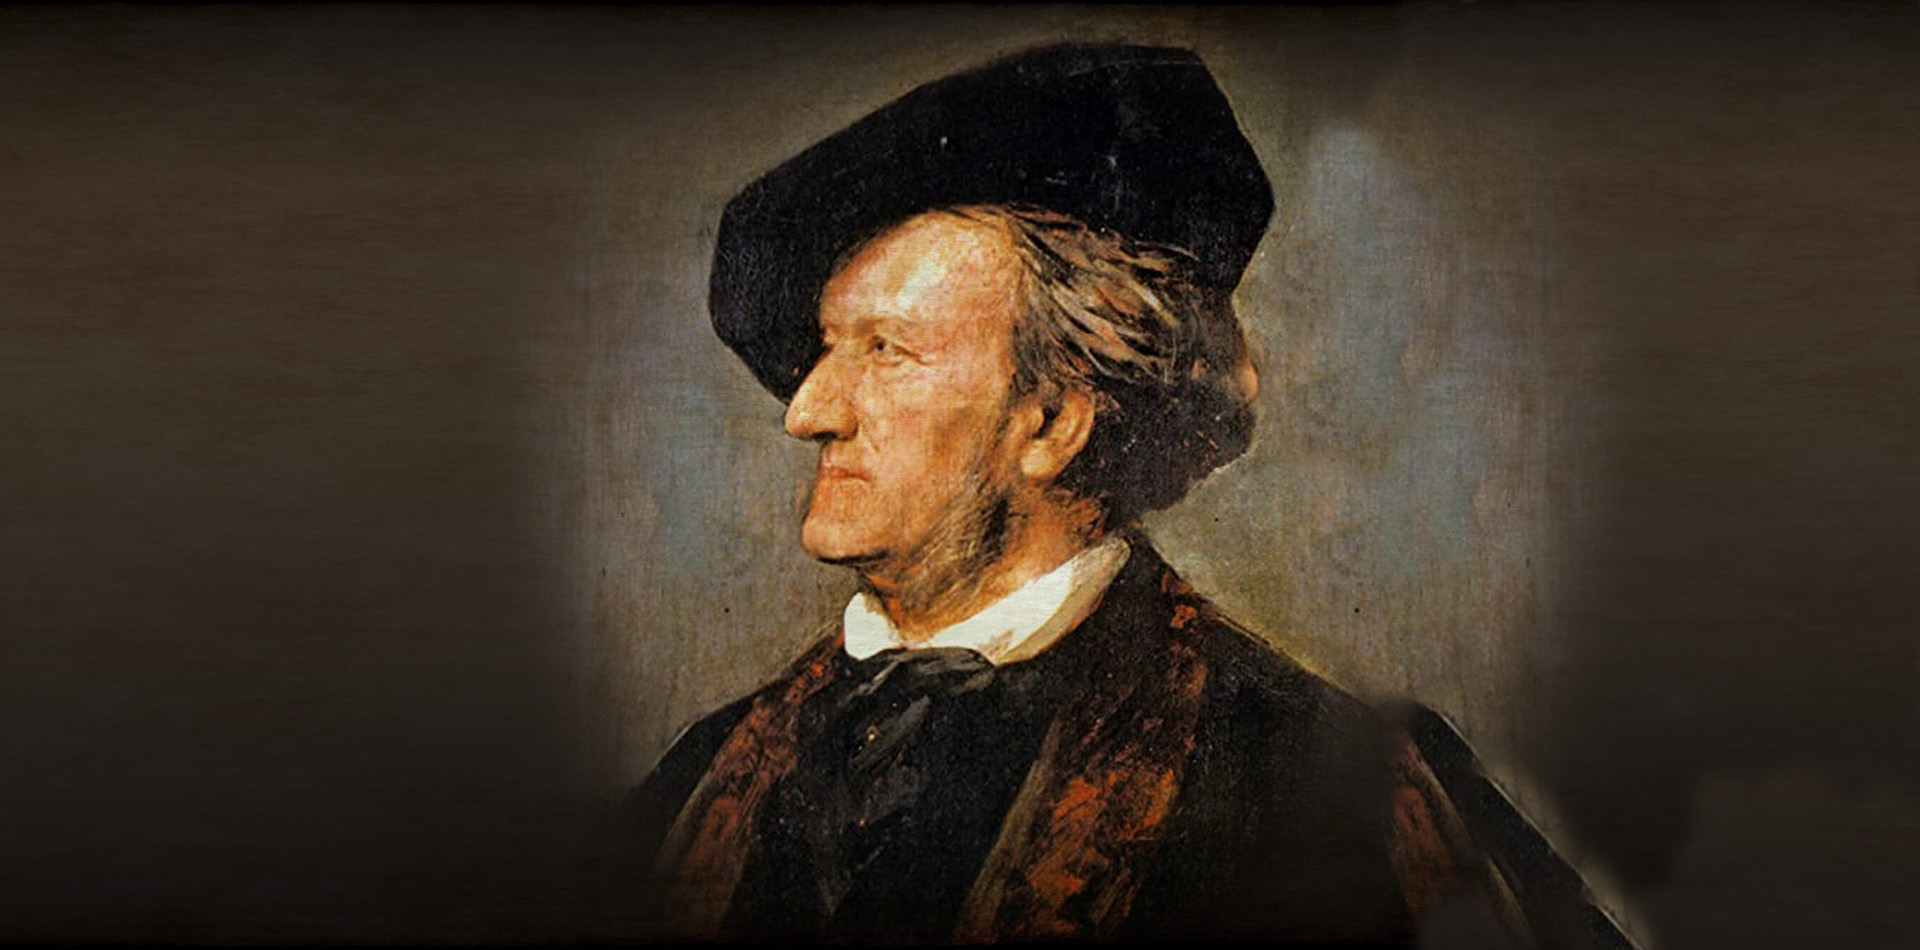 LOVE IN THE MUSIC OF RICHARD WAGNER